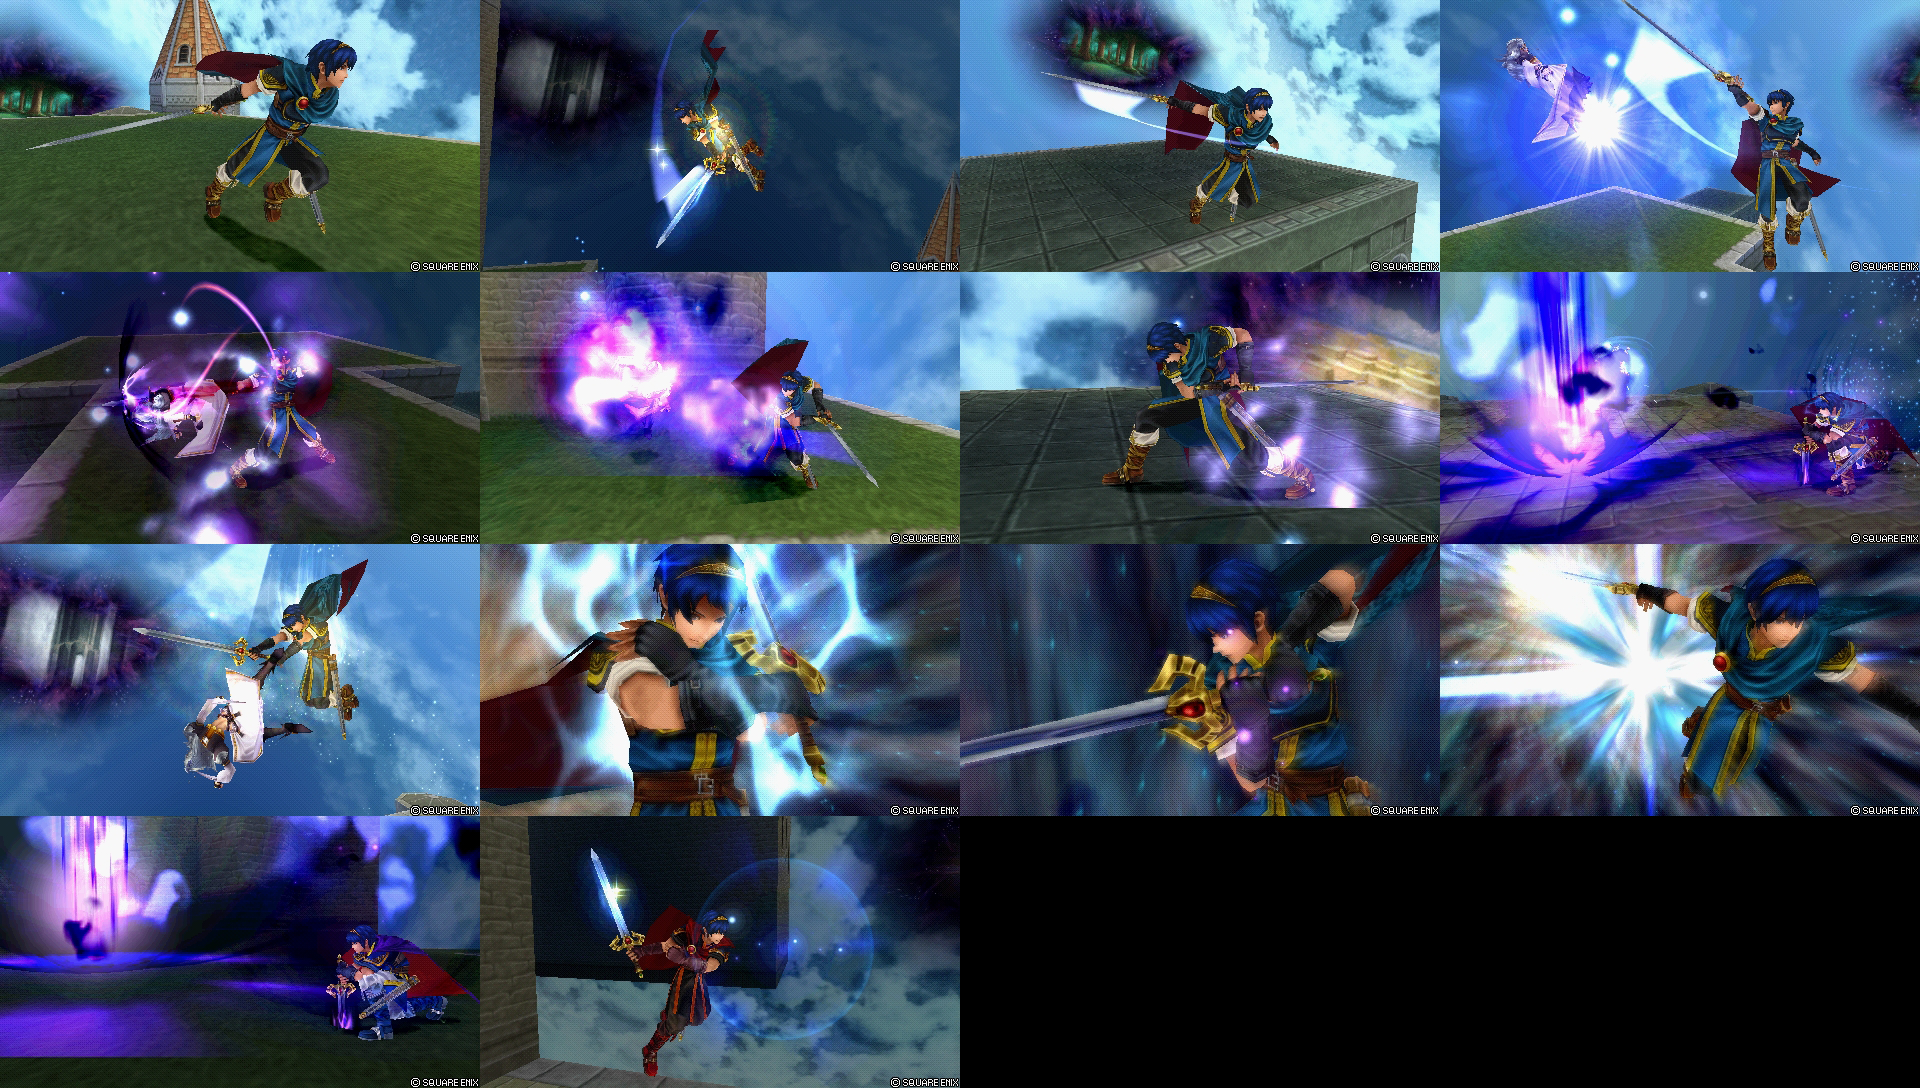 dissidia_012_mods__marth__smash_3ds__by_